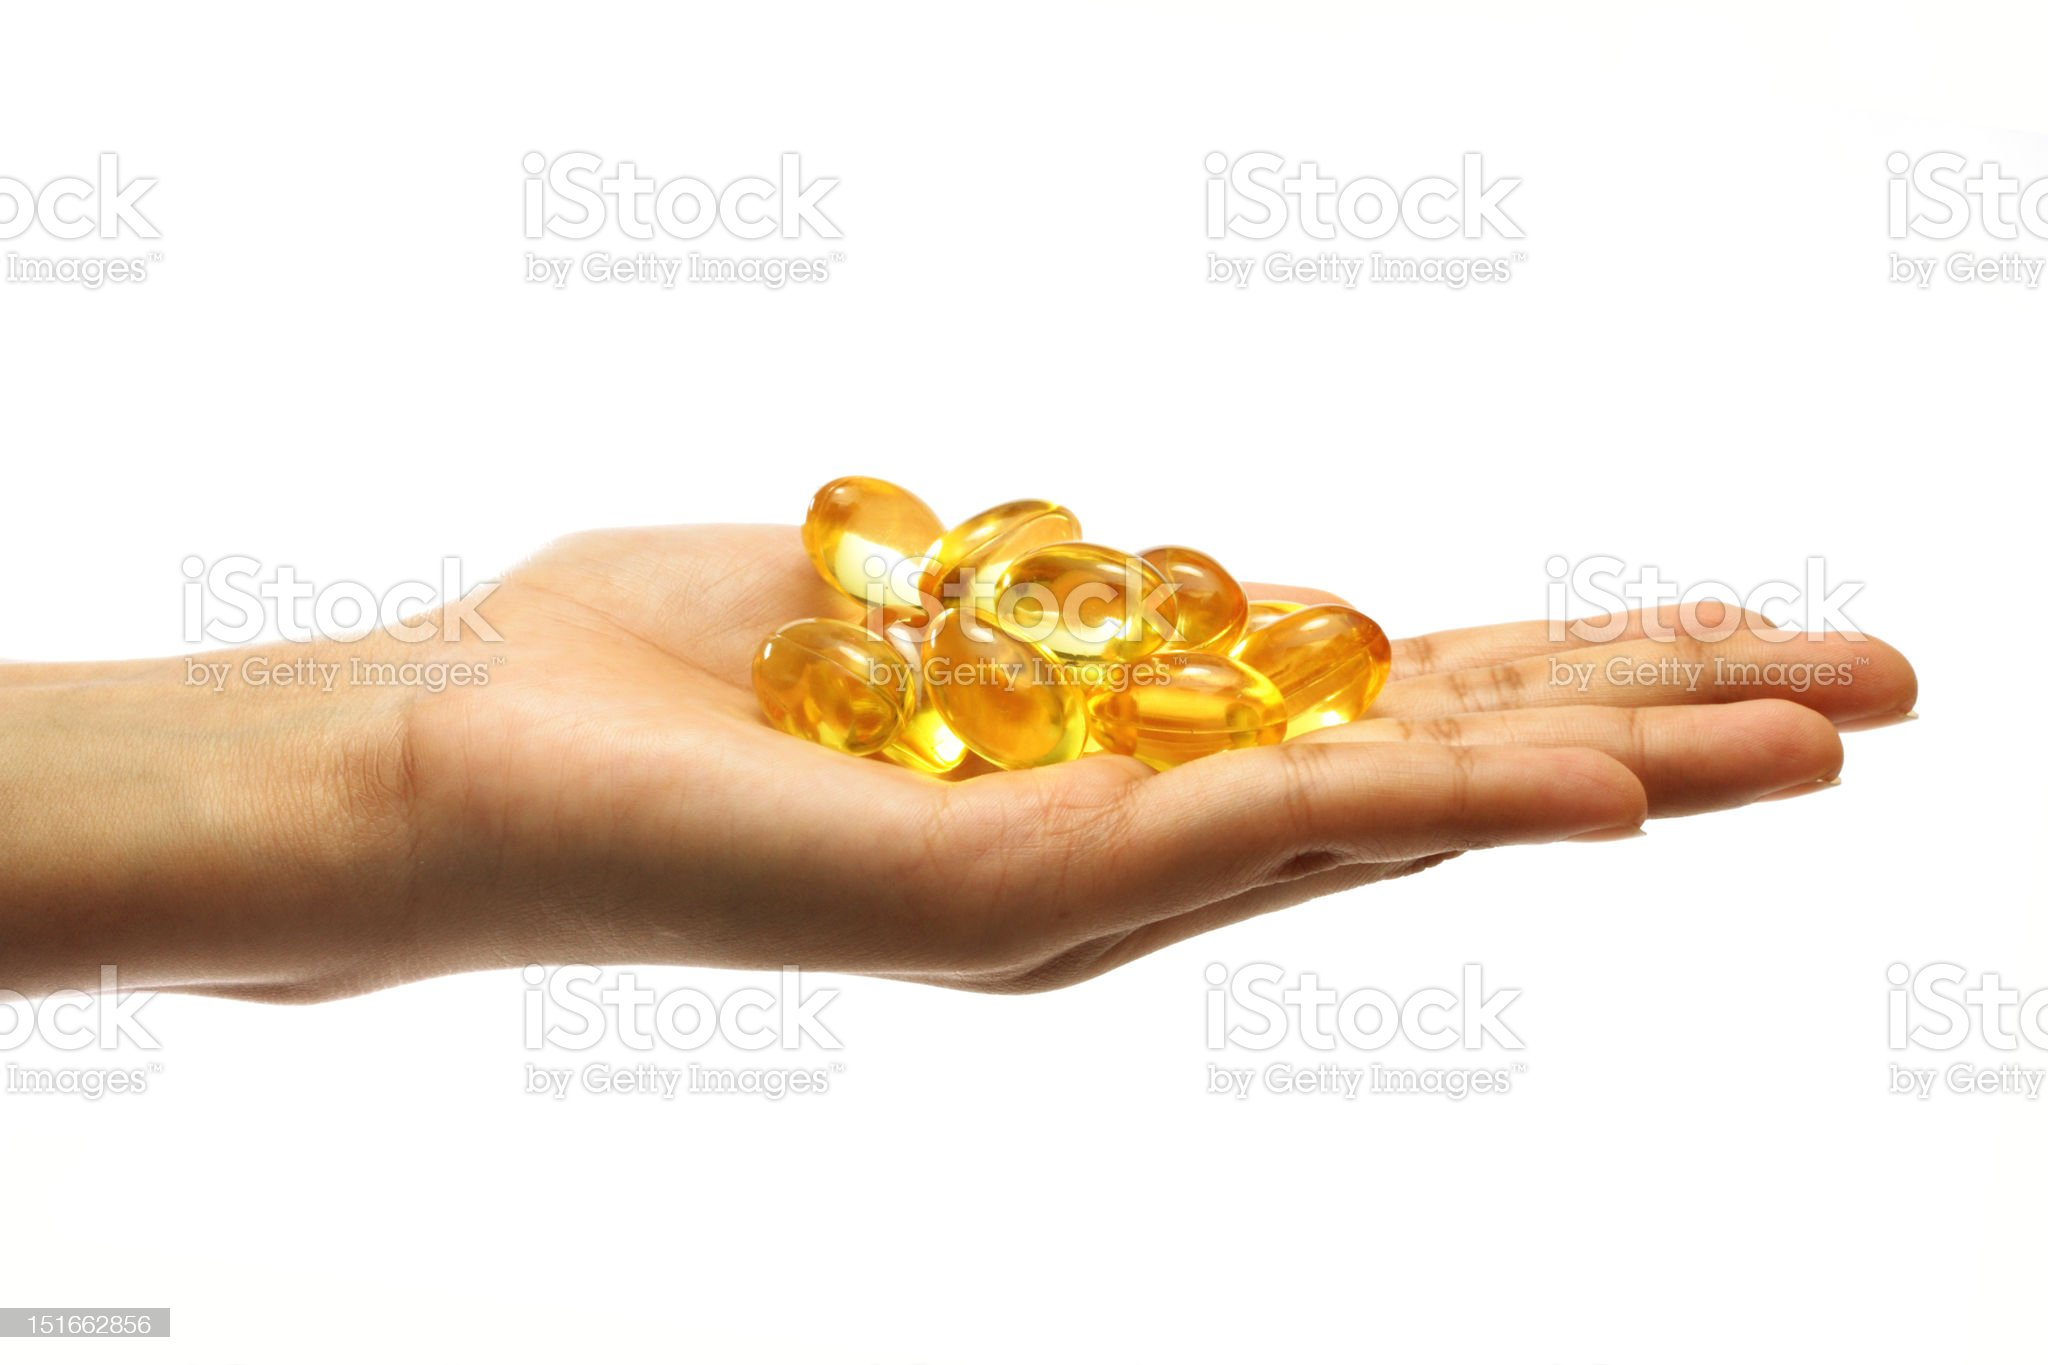 Cod liver oil pills royalty-free stock photo